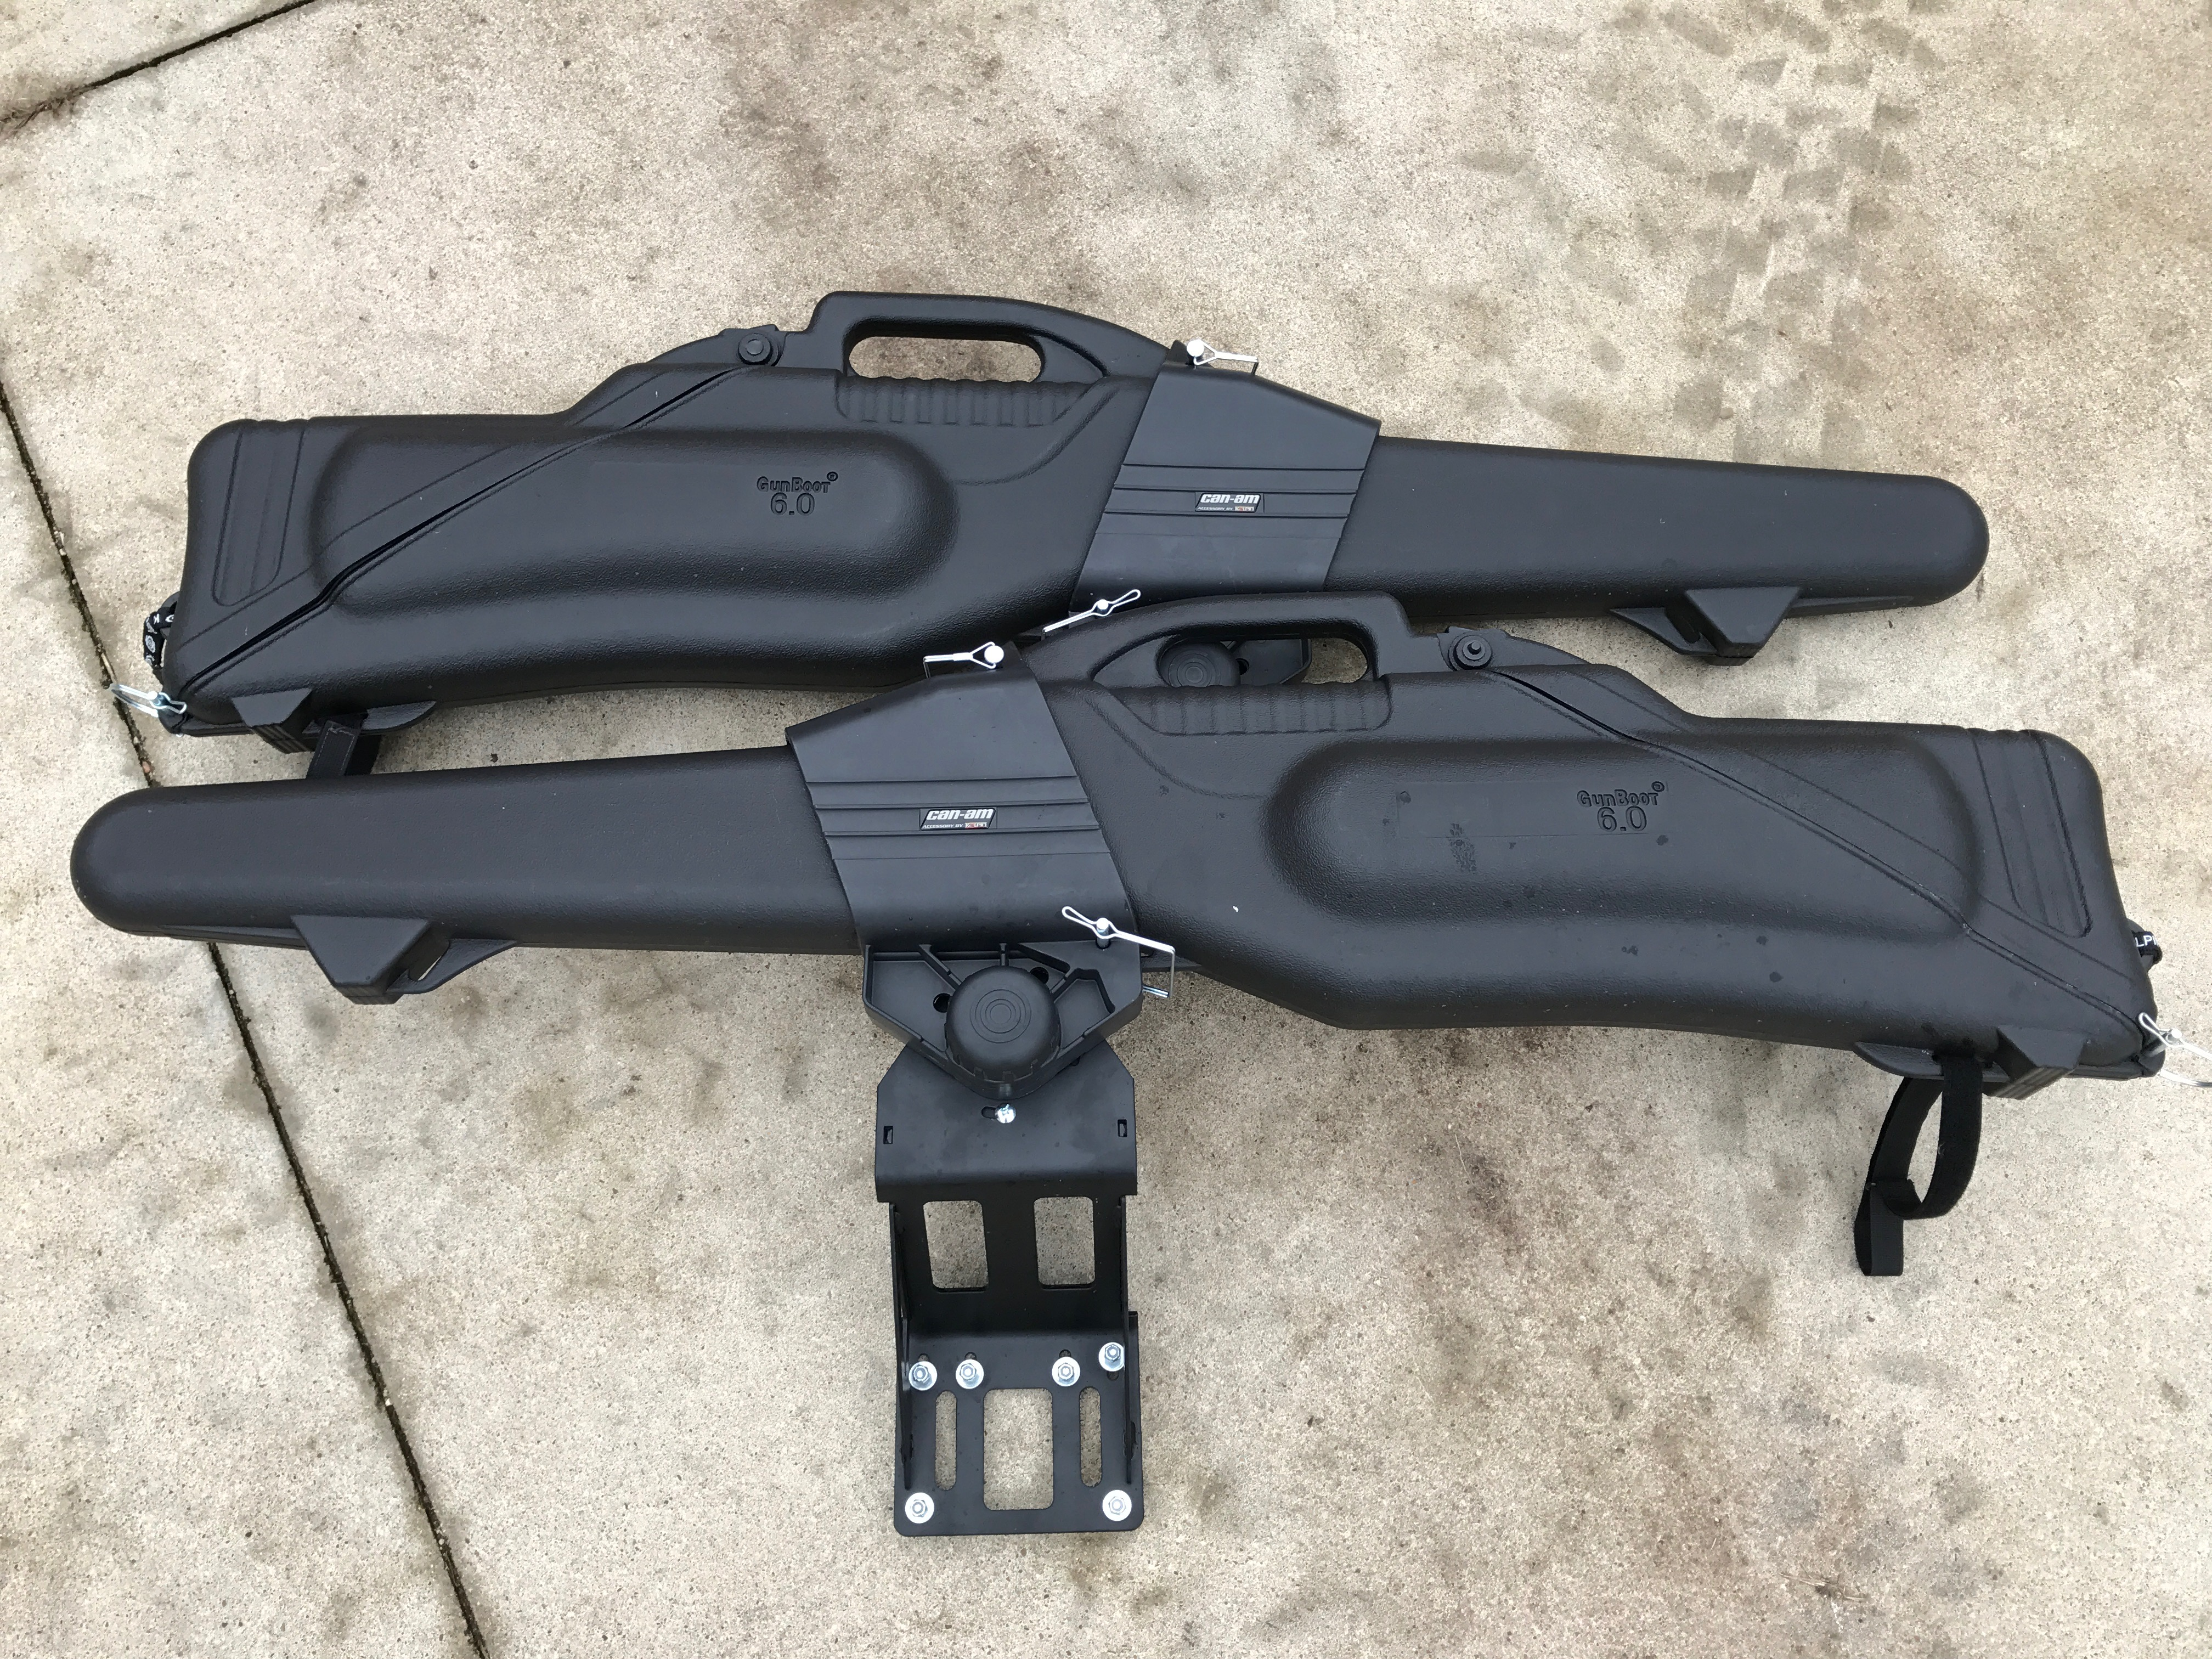 Wts Kolpin Double Gun Mount And Cases Can Am Commander